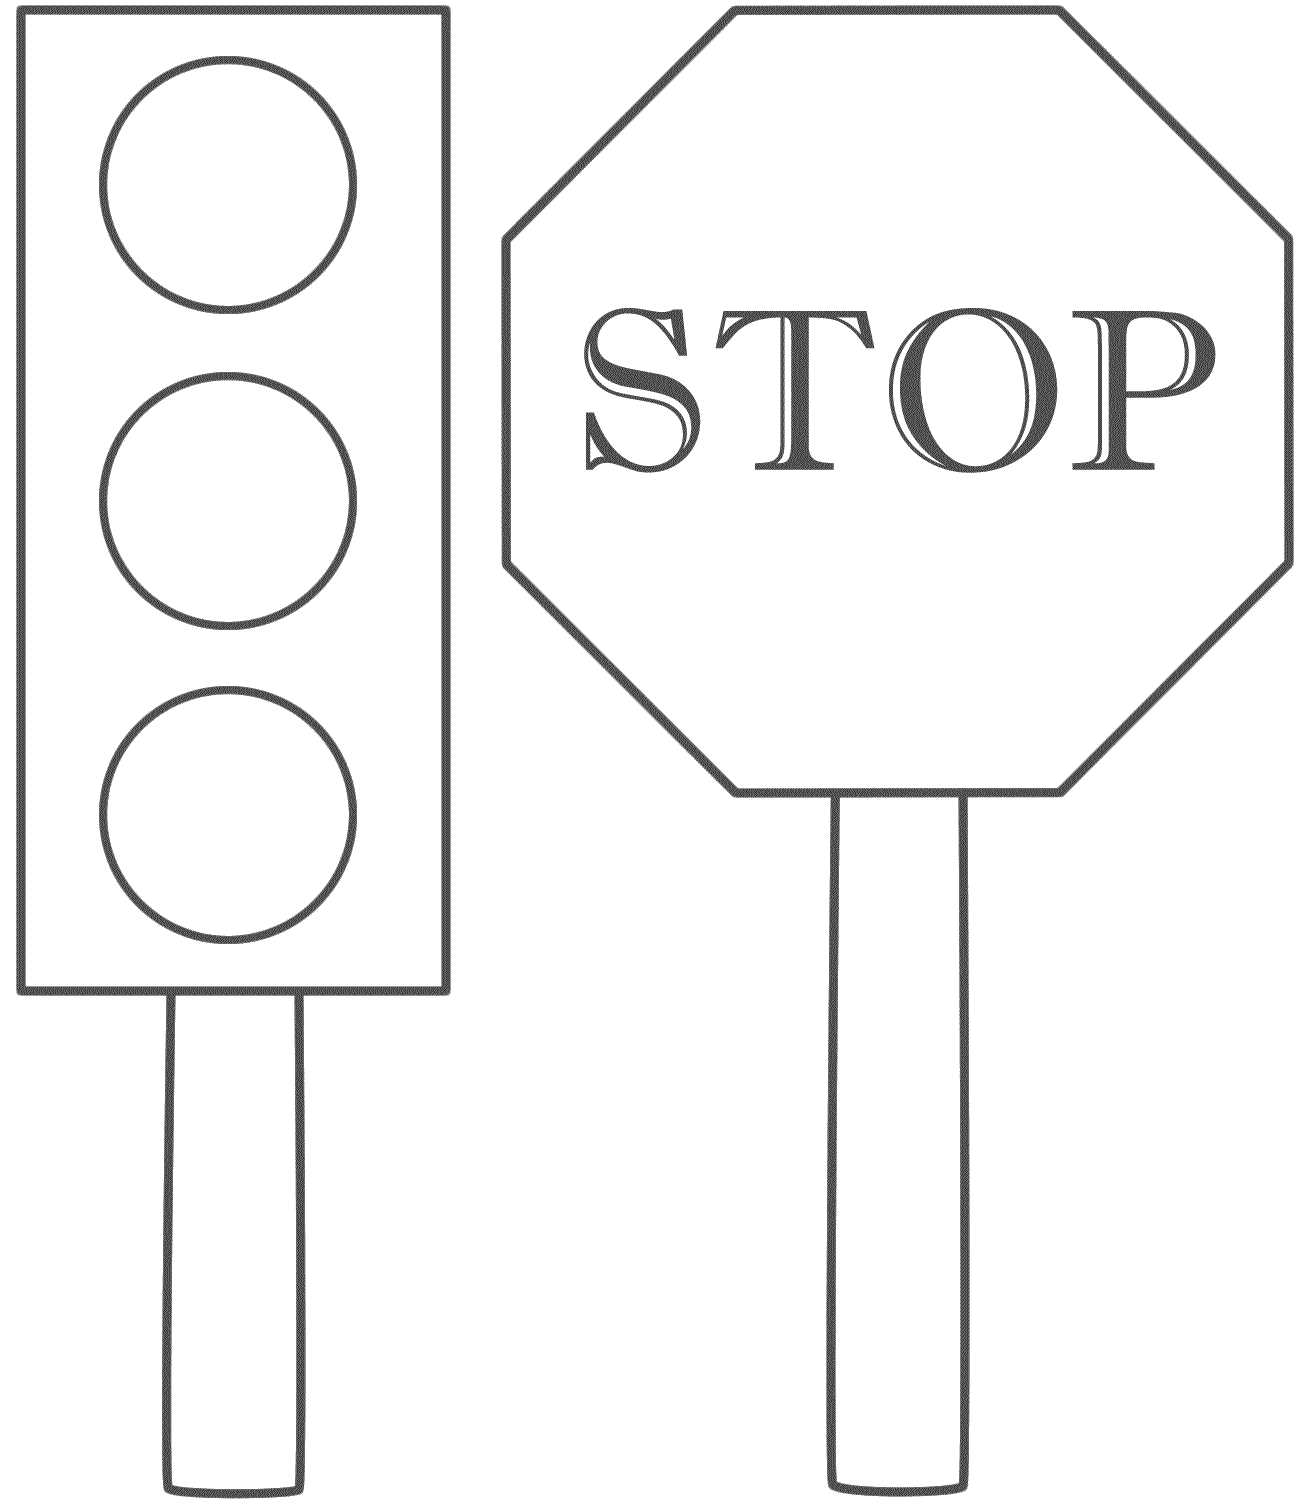 Traffic Light And Stop Sign Coloring Pages #QsrSud.